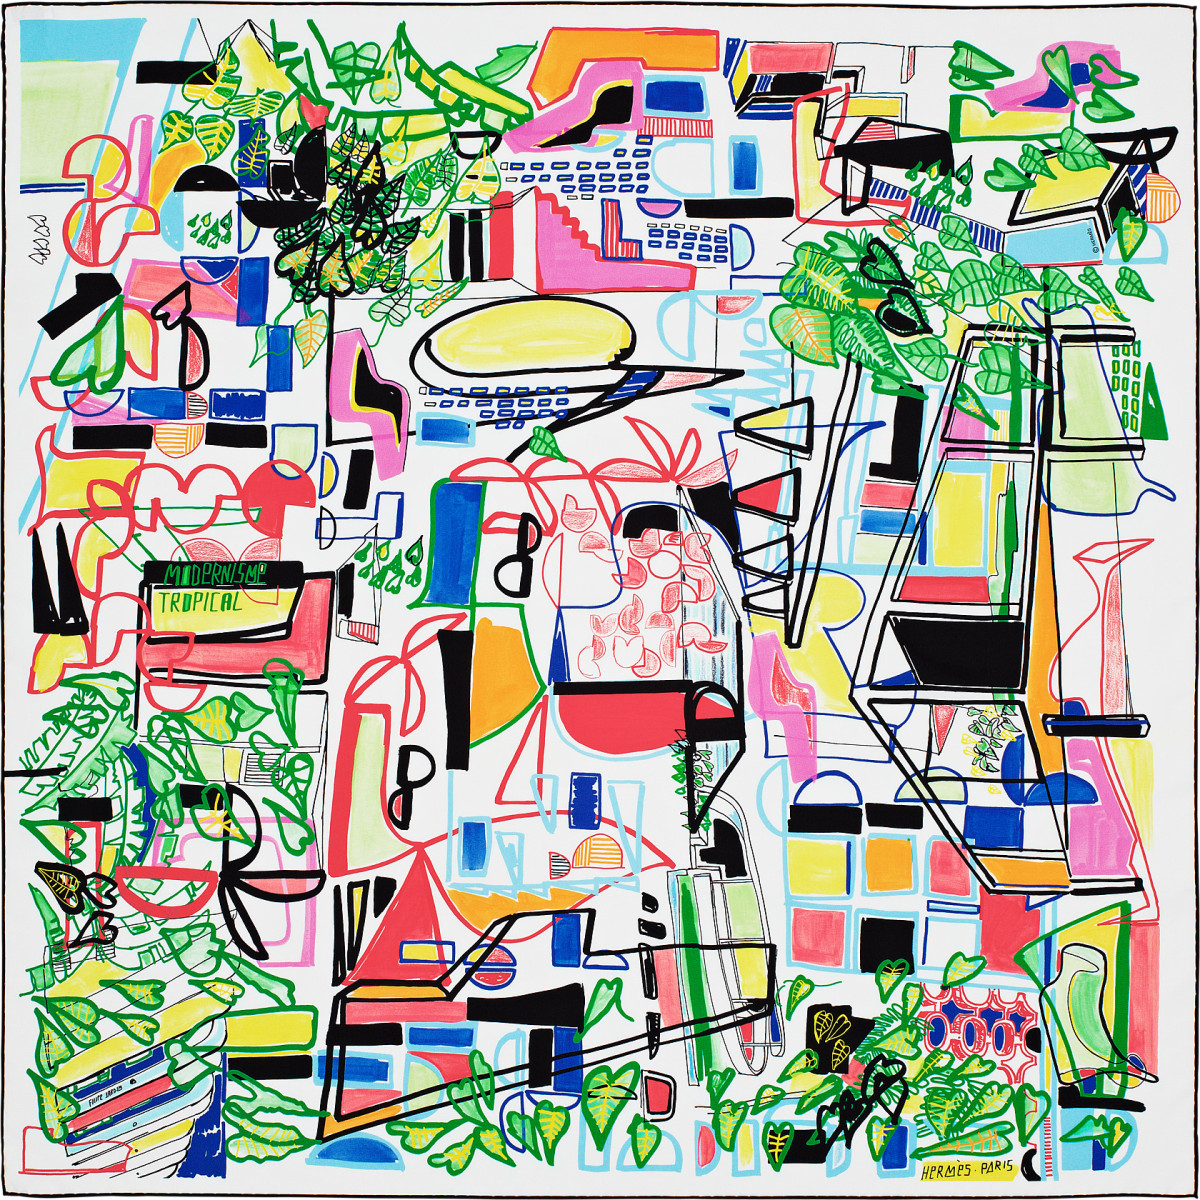 "Filipe Jardim / Commercial Work / Hermès Modernisme Tropical<span class=""slide_numbers""><span class=""slide_number"">13</span>/17</span>"